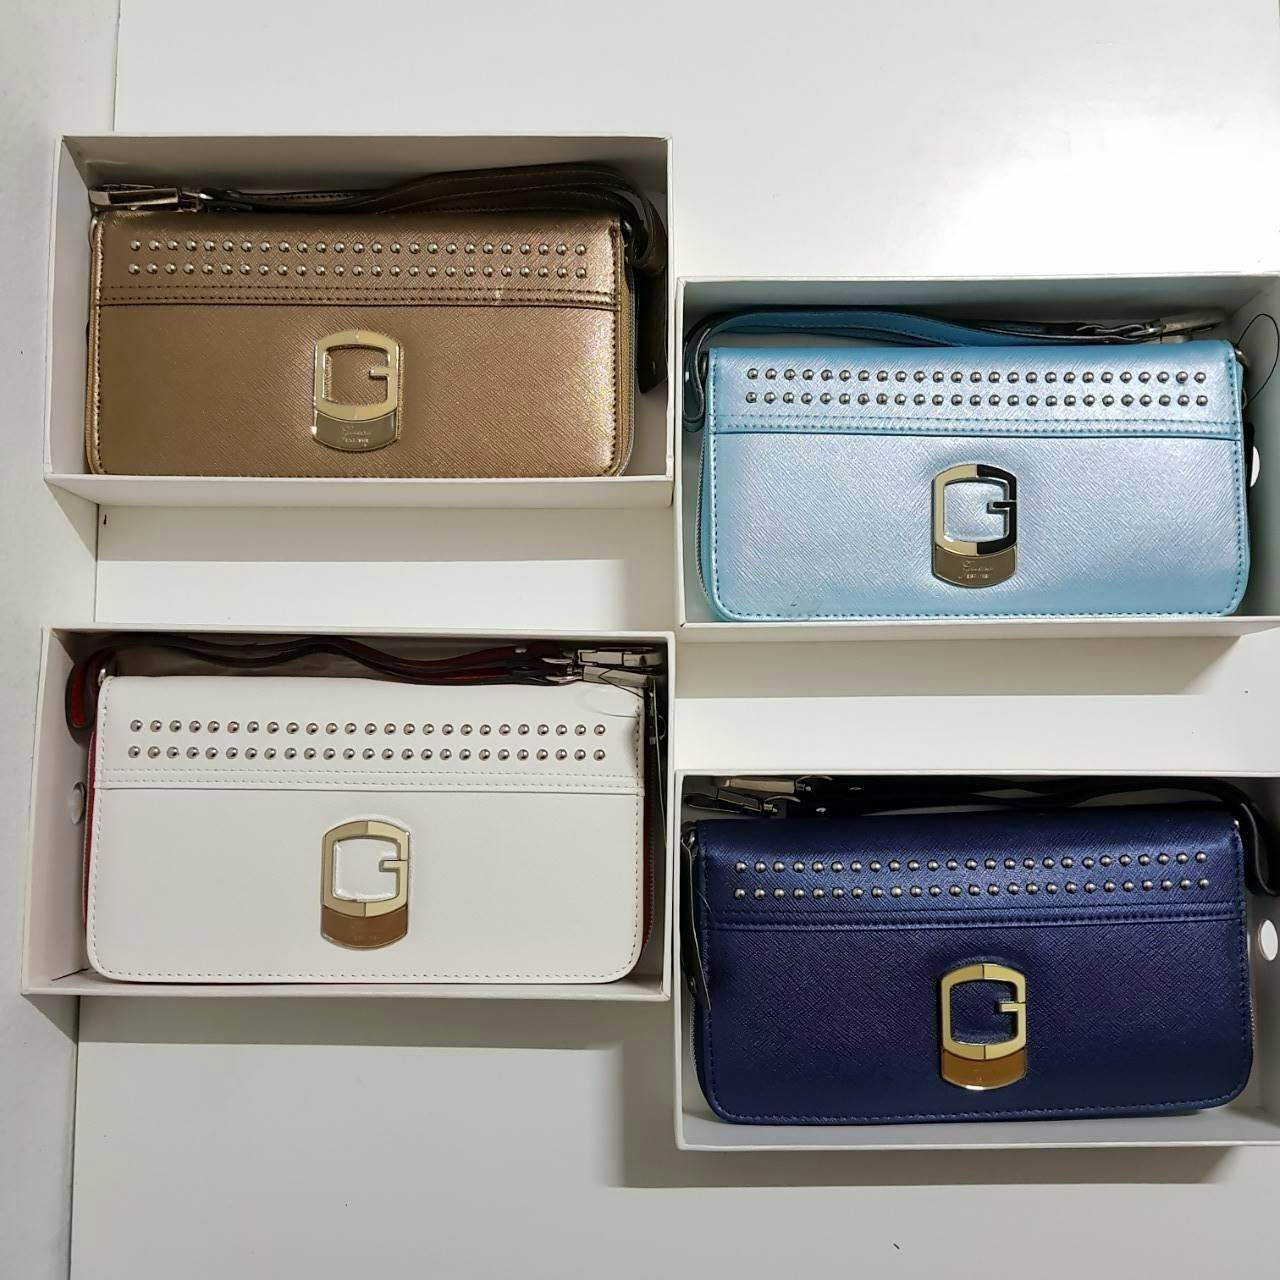 GUESS Wrislet Bag New With Box *สินค้า outlet พร้อมกล่อง